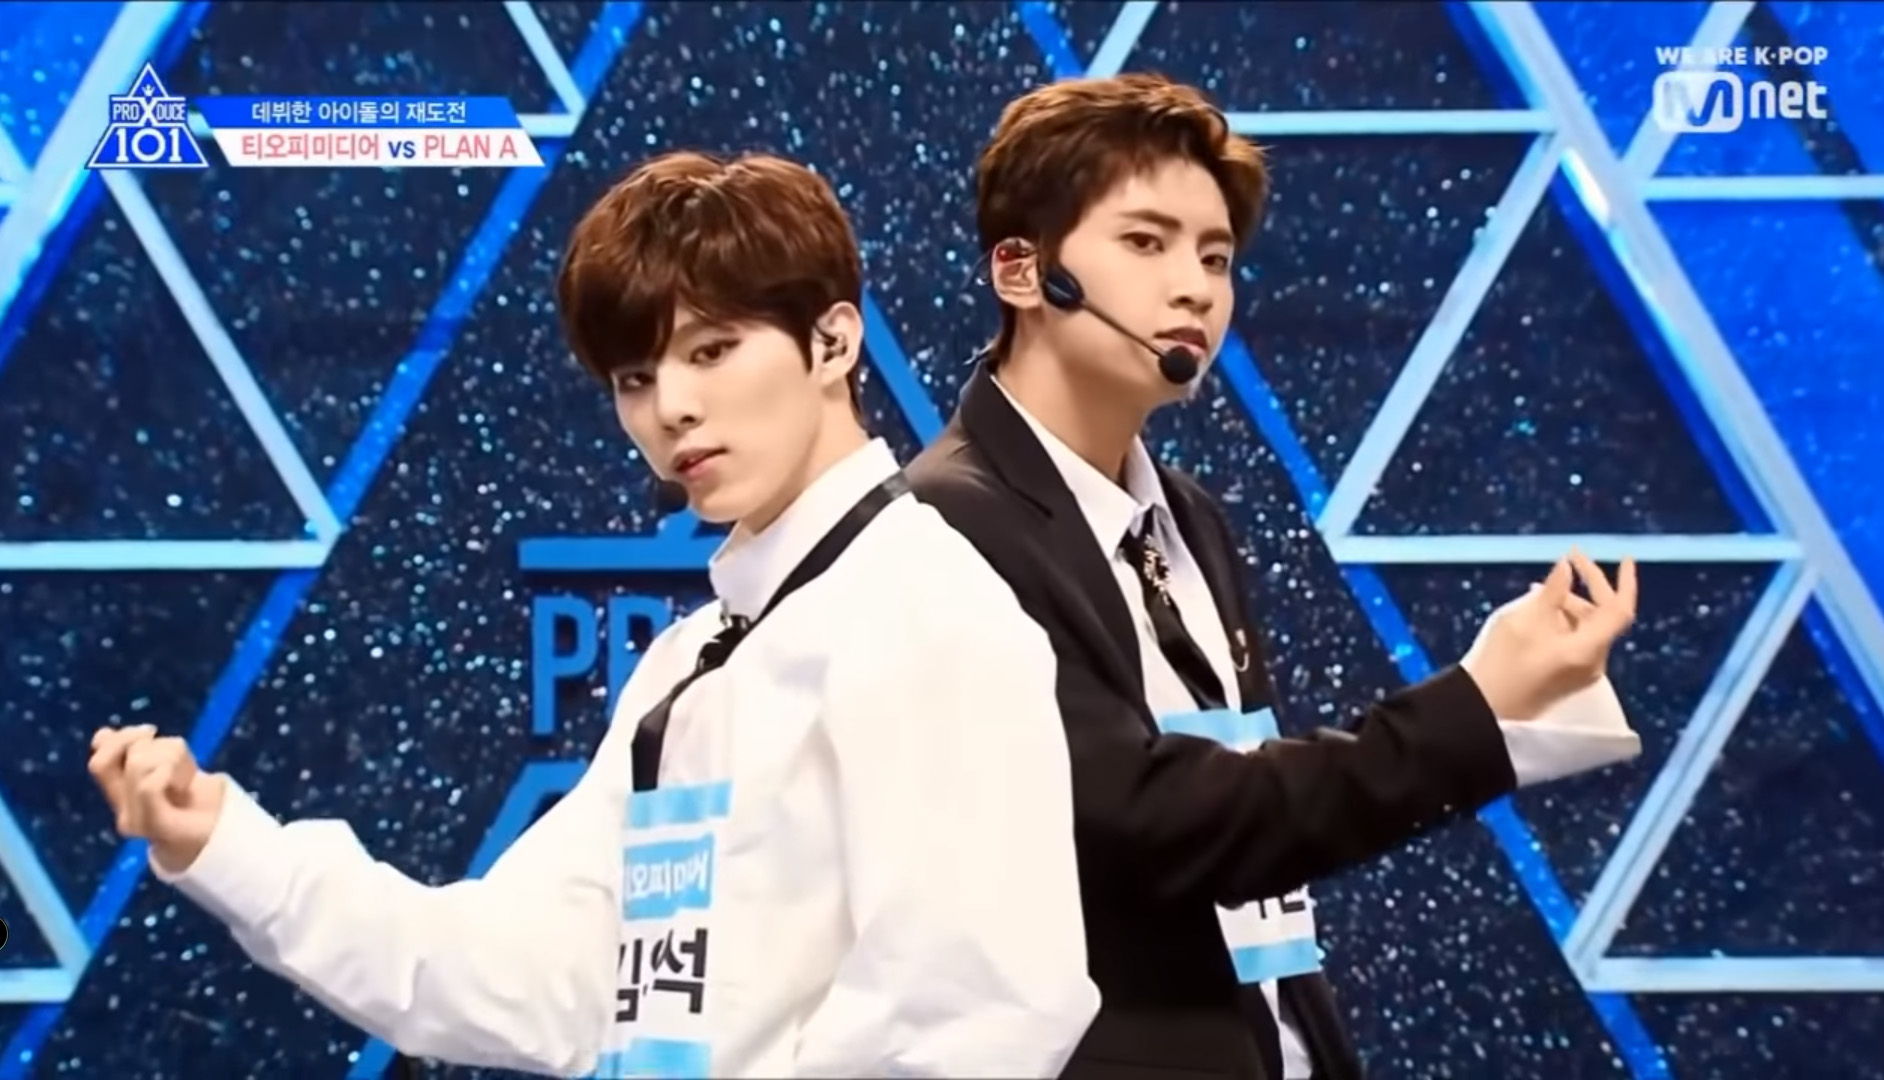 produce x 101, produce x 101 trainees, produce x 101 members, produce x 101 height, produce x 101 company, kpop, trainee, produce x 101 top media